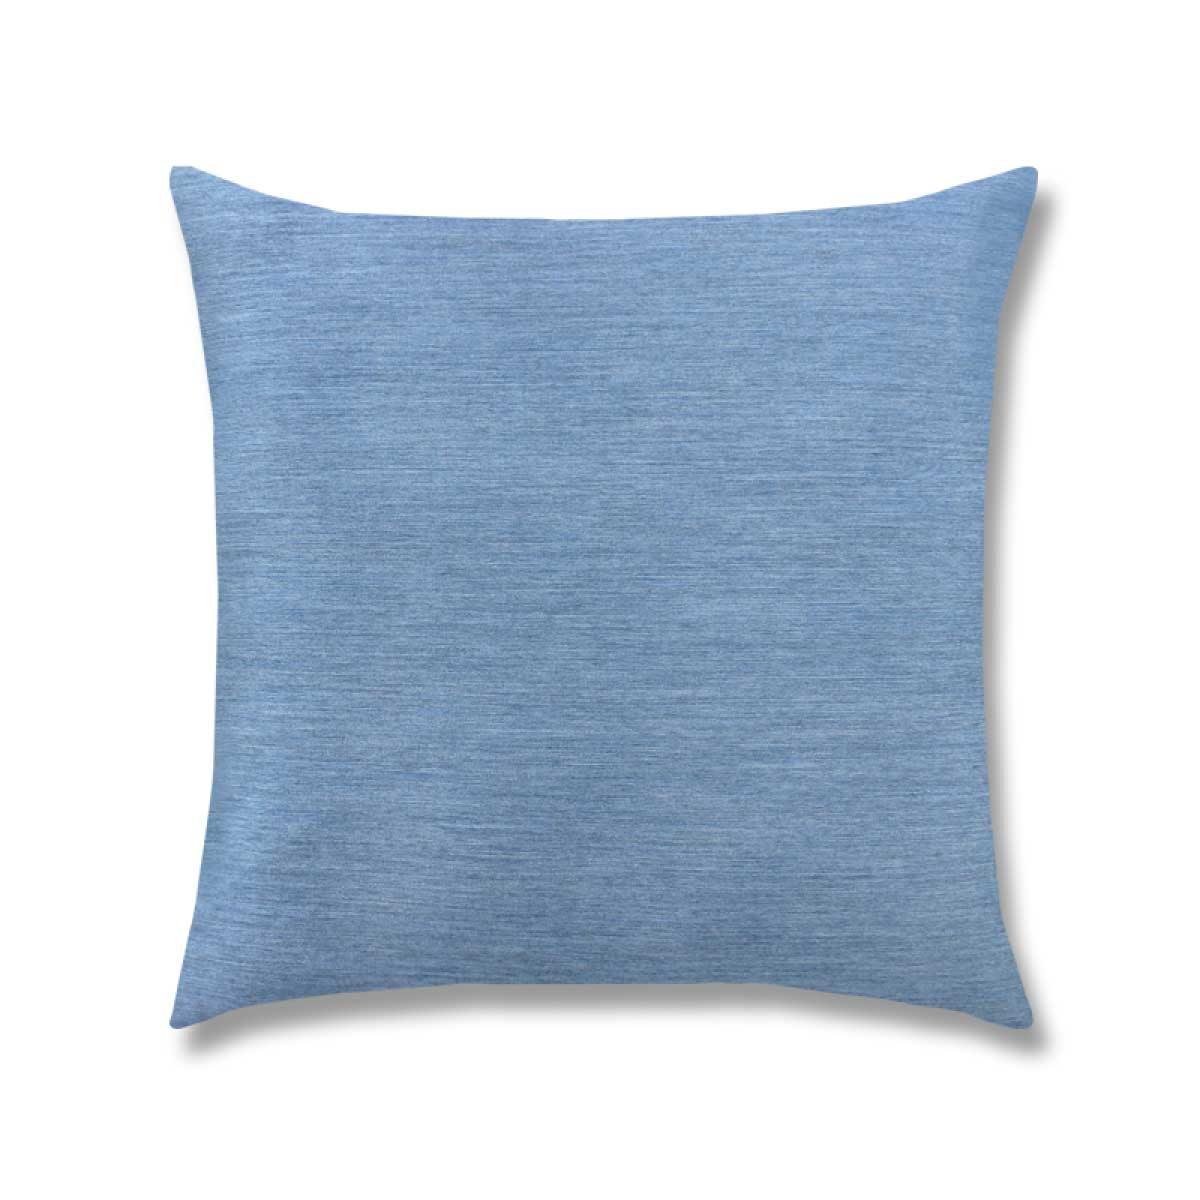 elaine-smith-nevis-pillow-rear